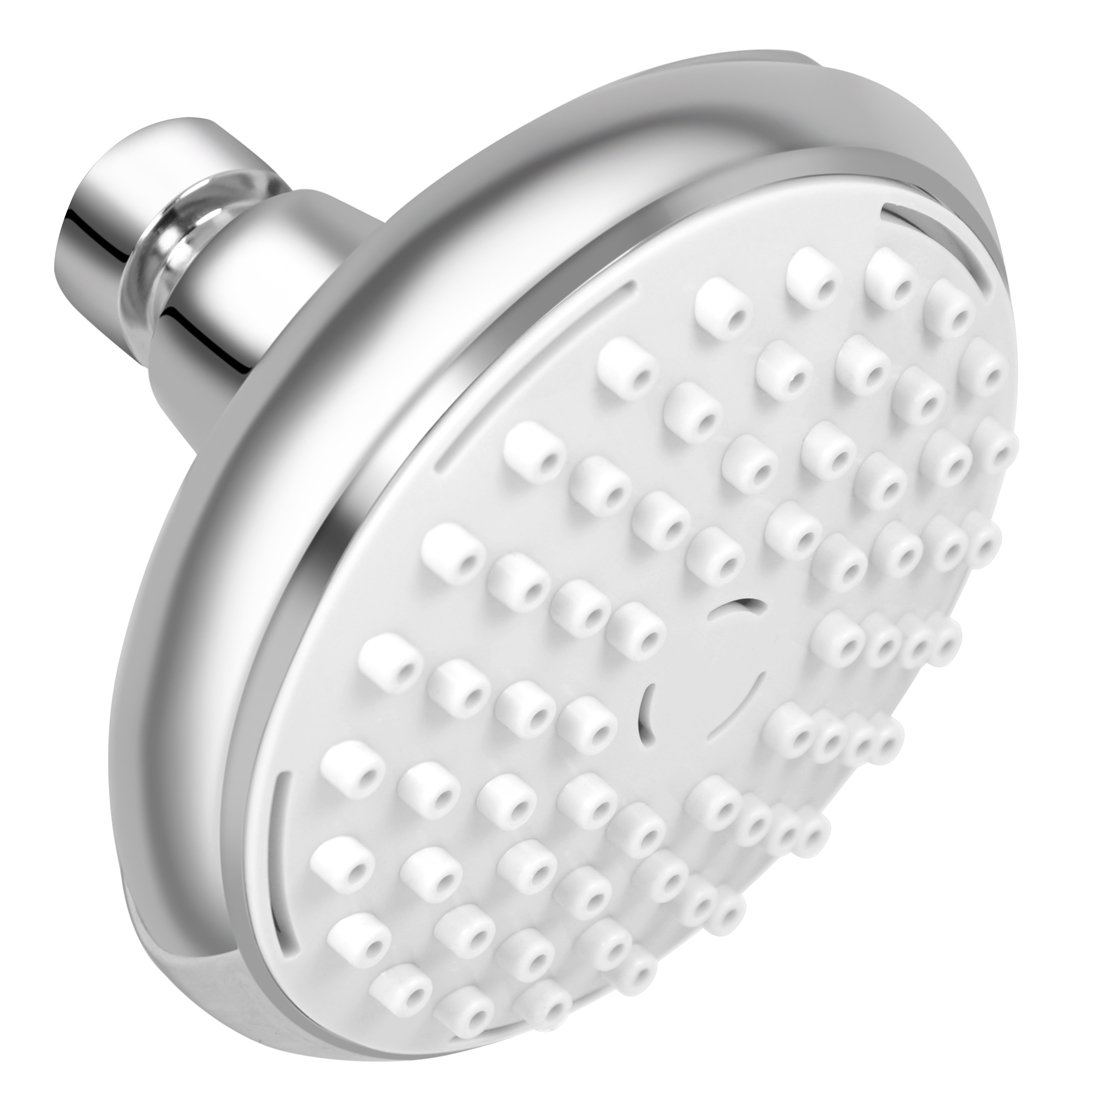 Rain Shower Head - Removable Water Restrictor - High Pressure Air-Injection Oxygenics Rainfall-Adjustable Swivel Ball Joint